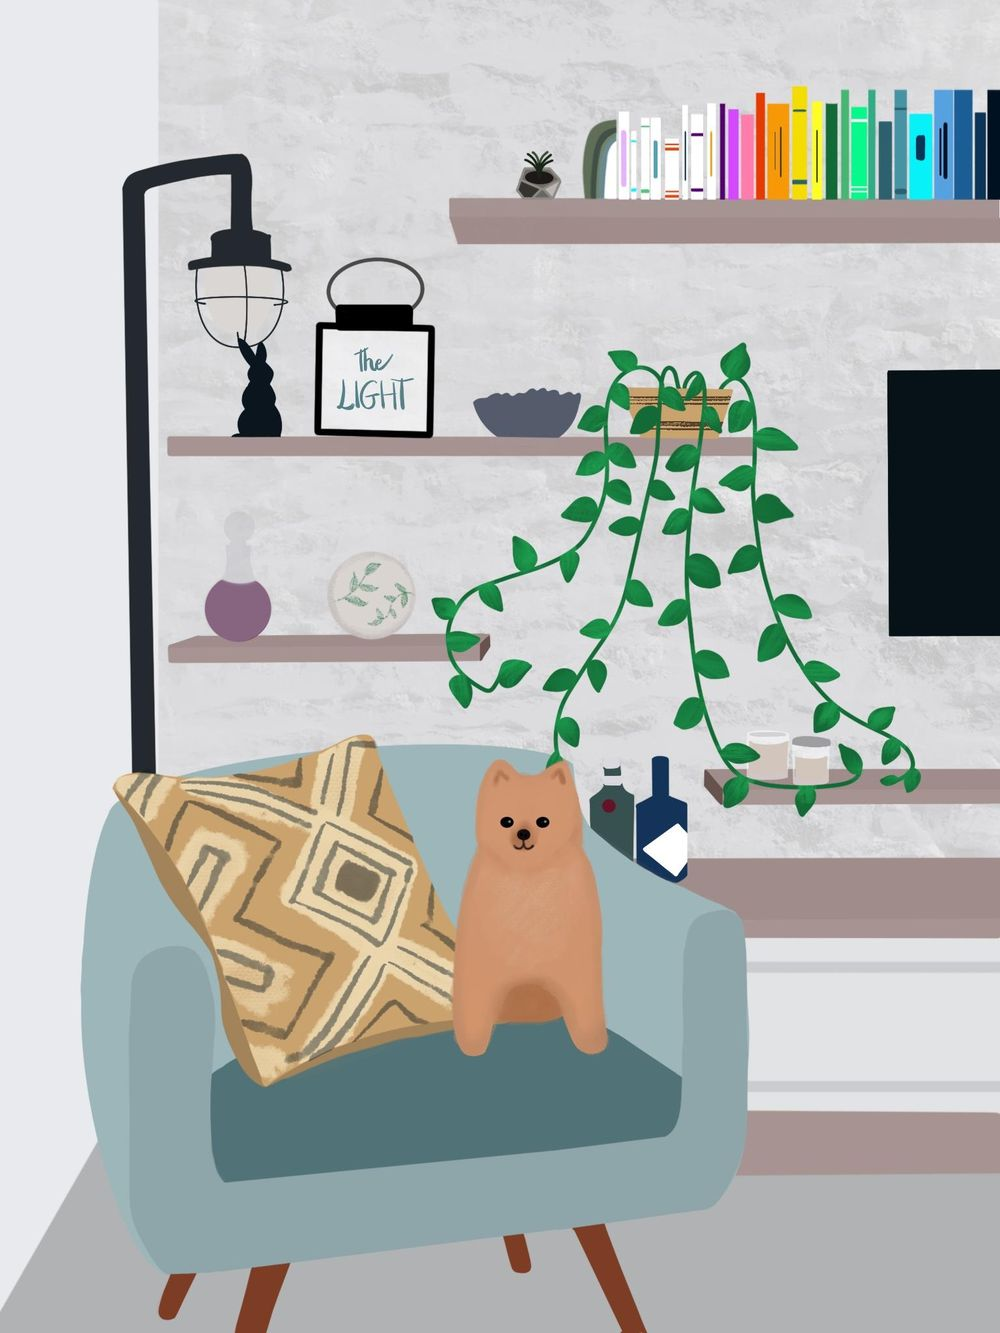 Living room - image 1 - student project